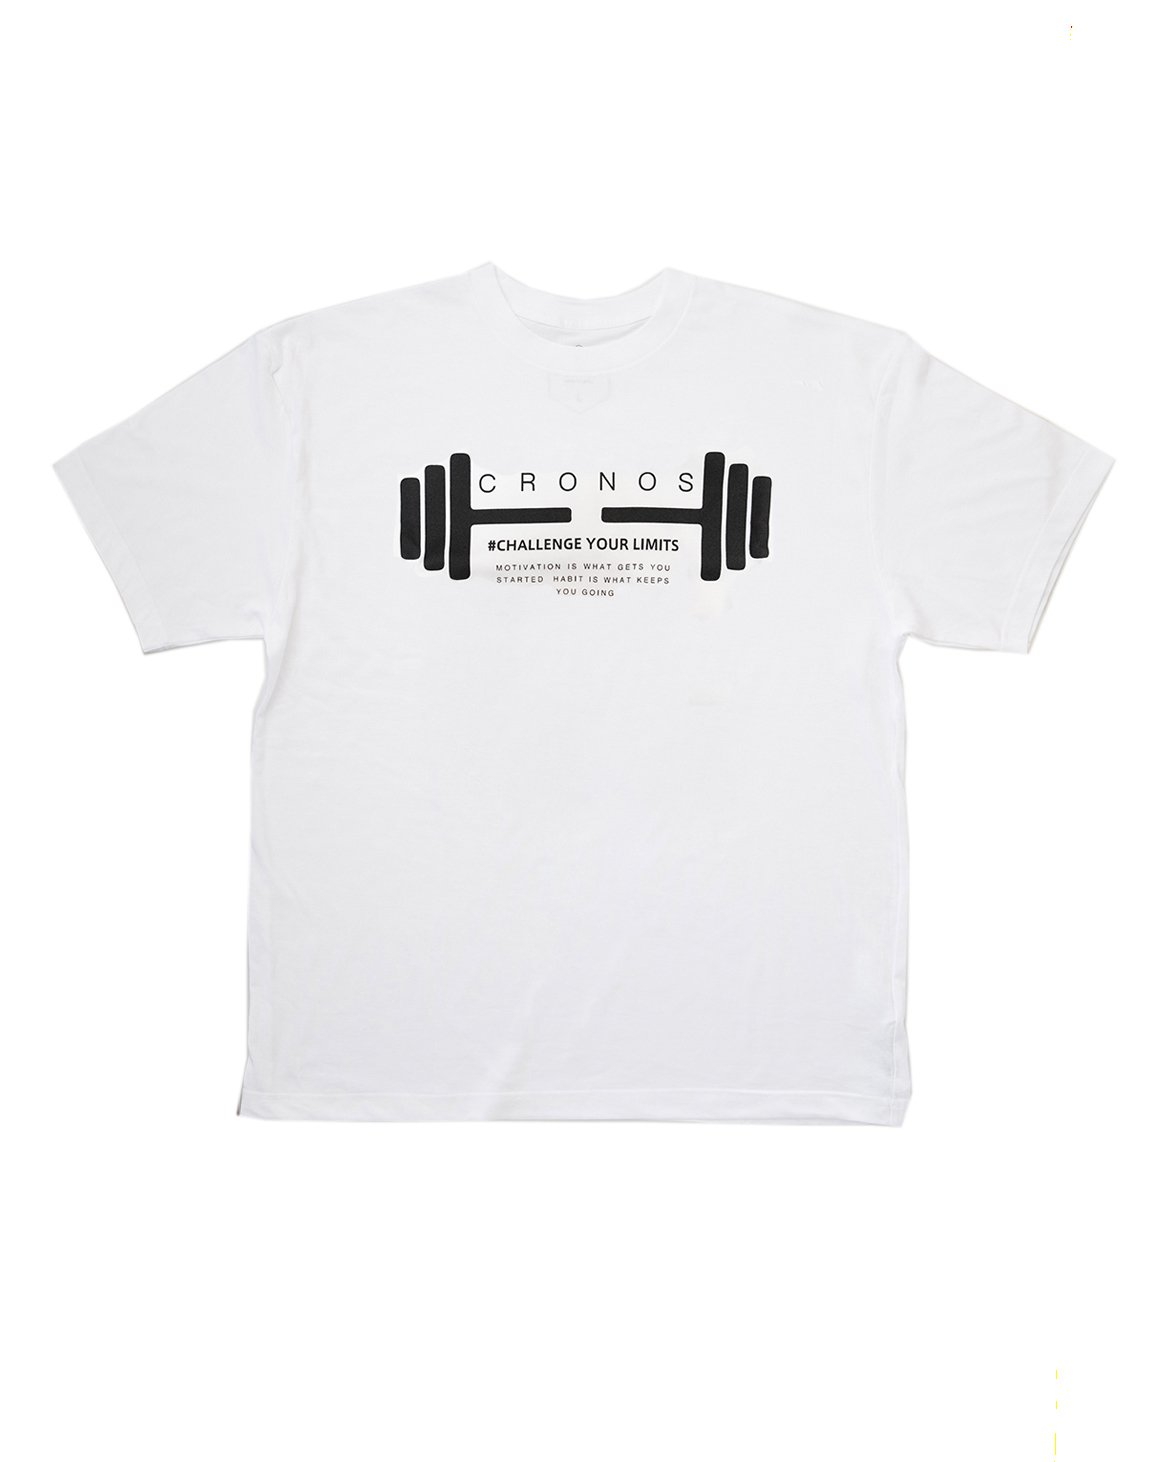 <img class='new_mark_img1' src='https://img.shop-pro.jp/img/new/icons1.gif' style='border:none;display:inline;margin:0px;padding:0px;width:auto;' />CRONOS DUMBBELL LOGO T-SHIRTS【WHITE】